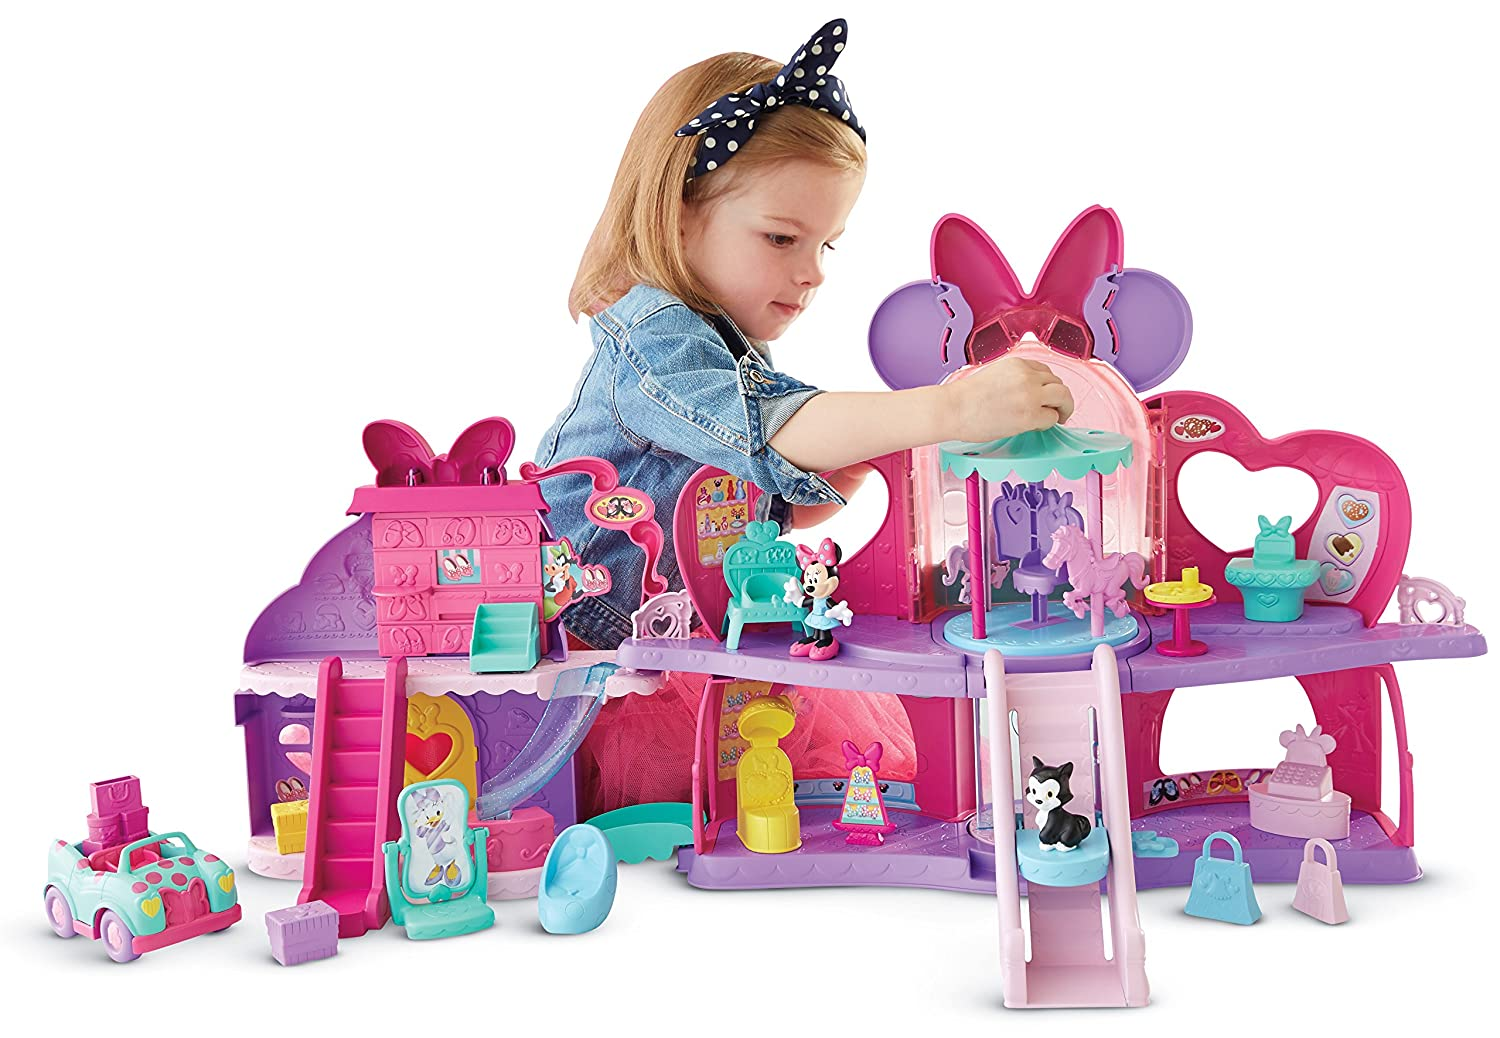 4 Years Toys For Girls : Awesome toys for year old girls in